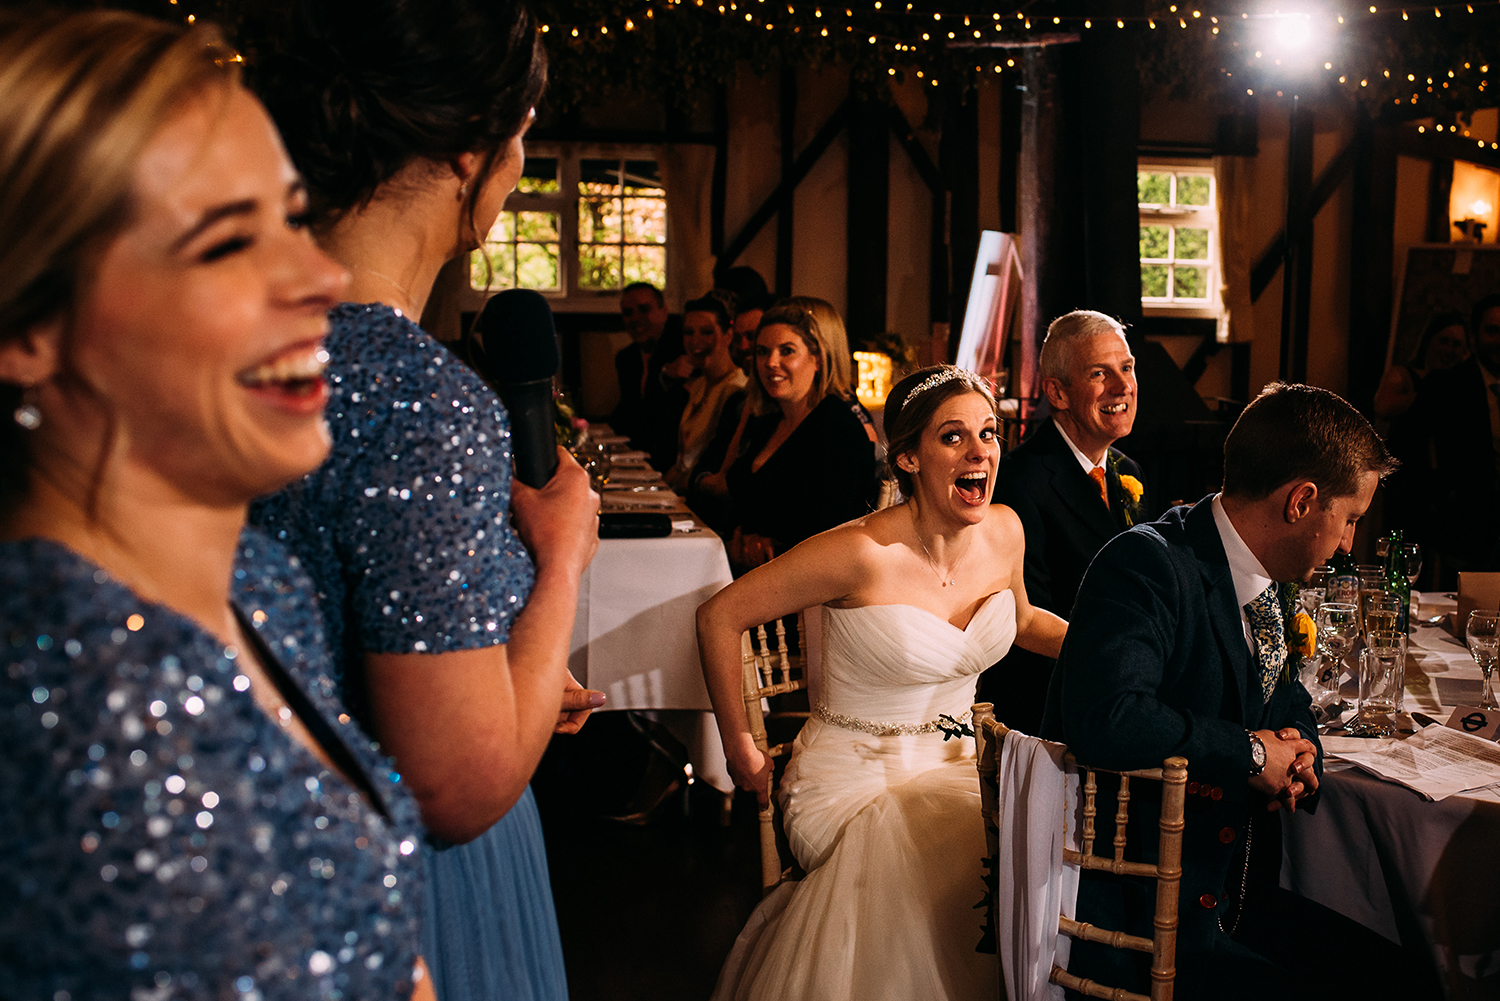 focus on brides shocked face during the bridesmaids speech with the bridesmaids laughing in the foreground